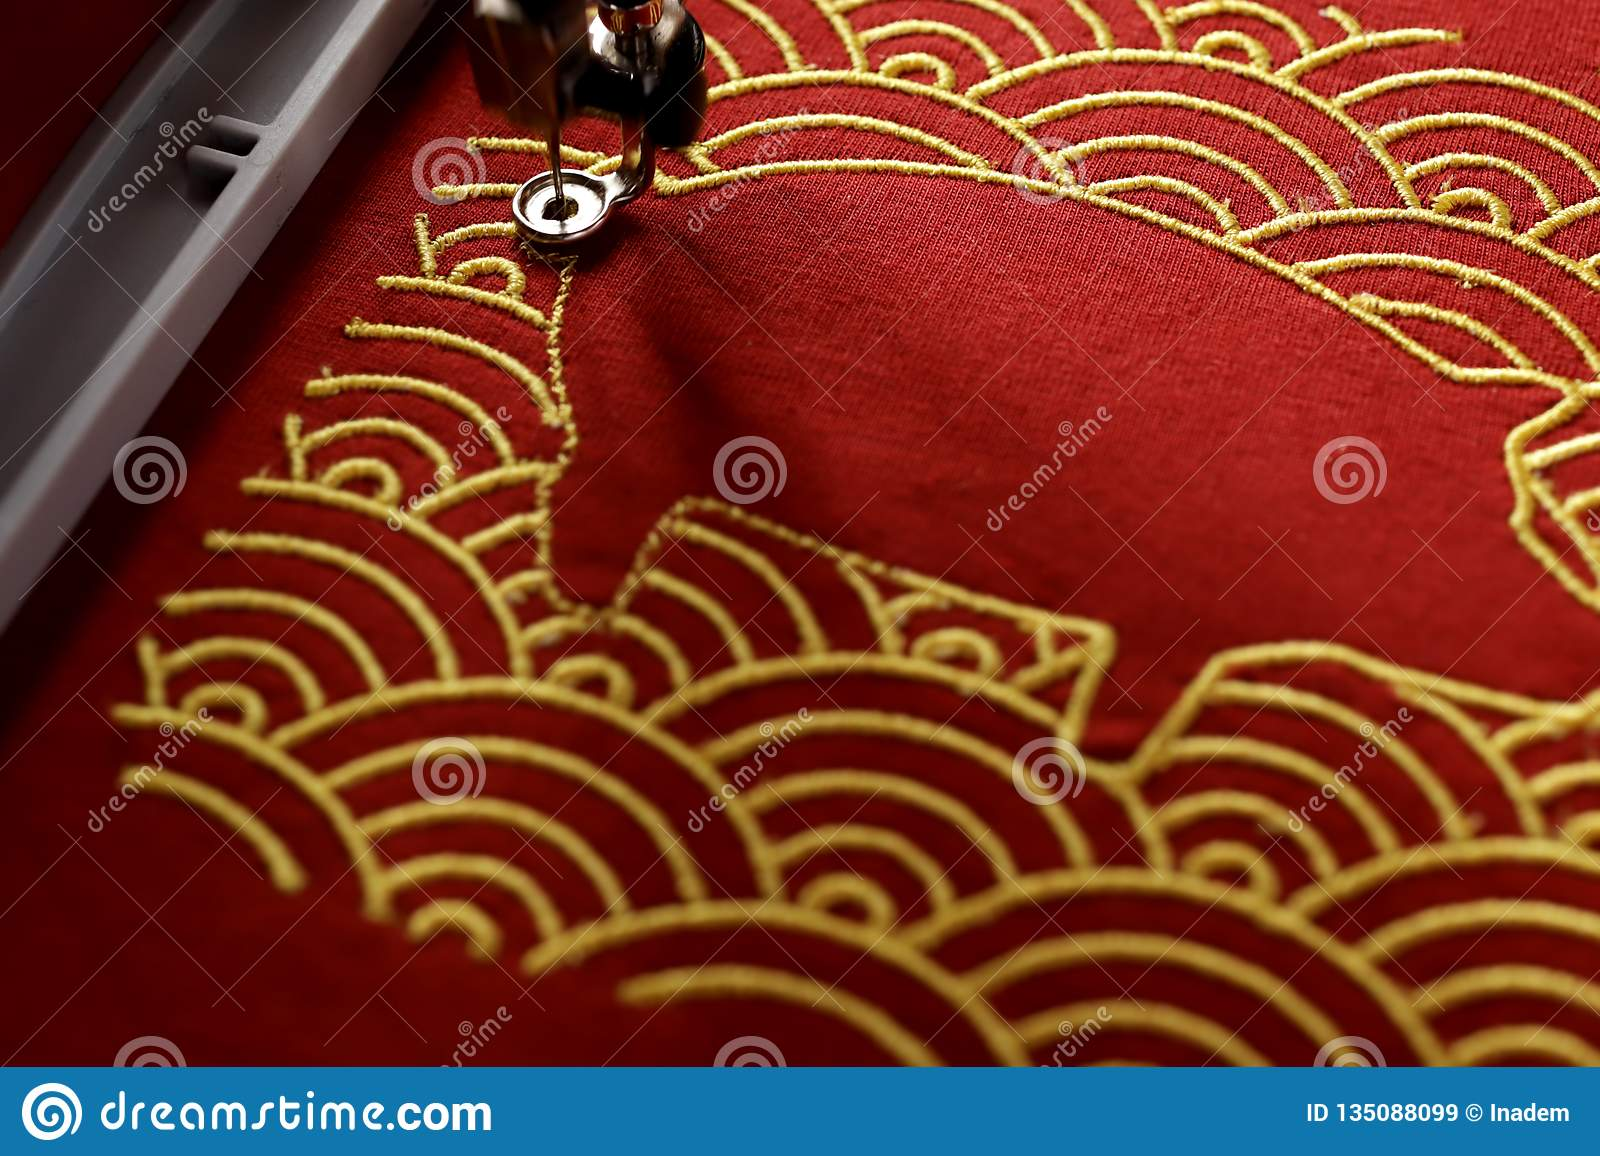 Pig embroidery framed by traditional shell pattern with gold on red fabric in festive light mood - chinese new year concept